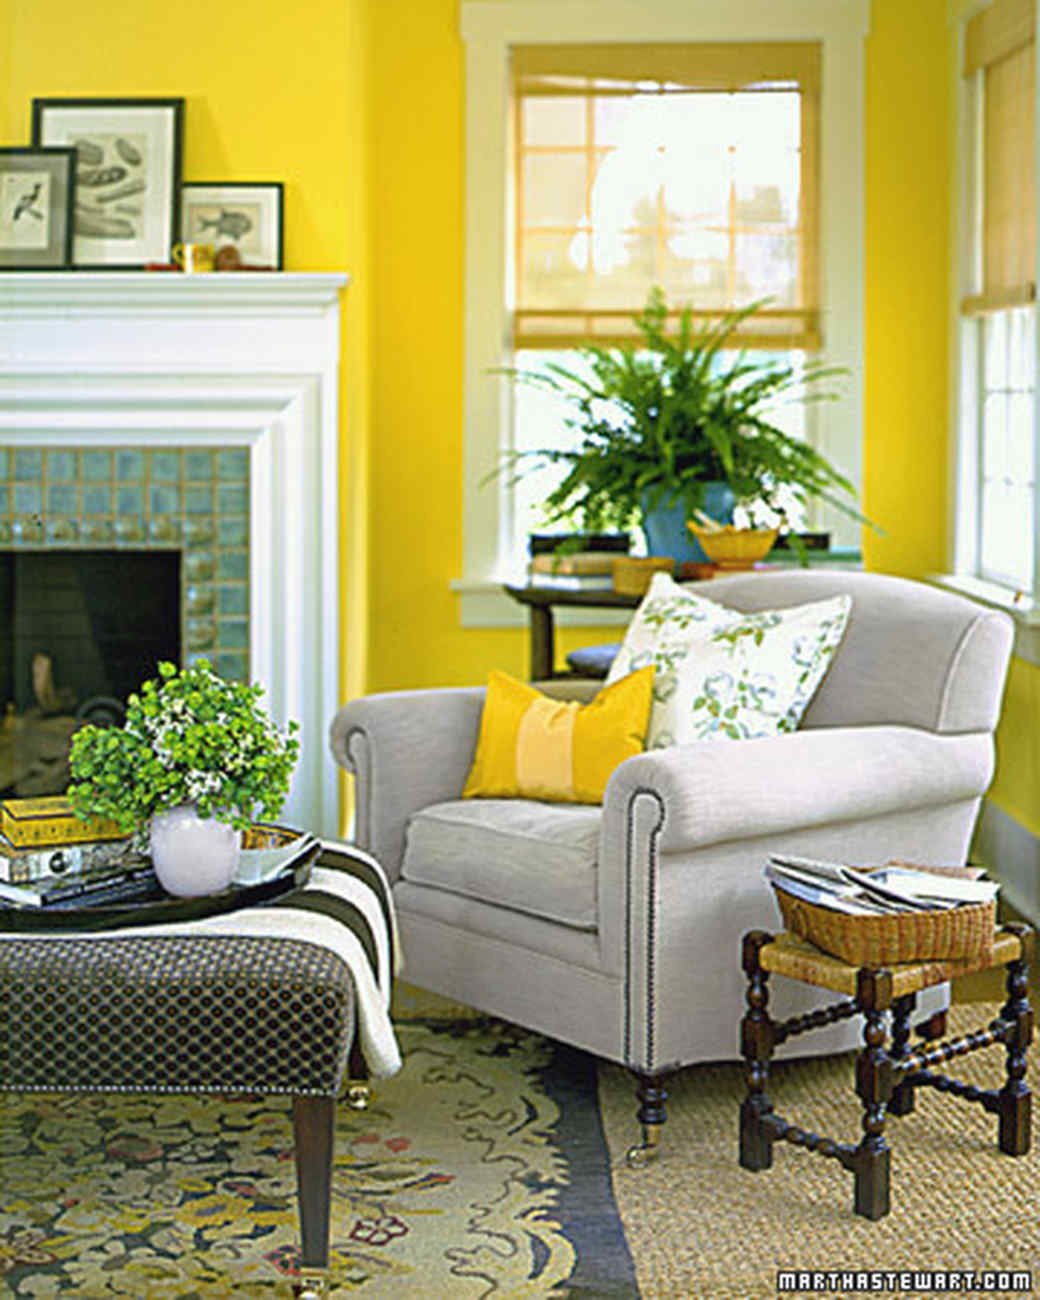 Green and yellow living room - Green And Yellow Living Room 34